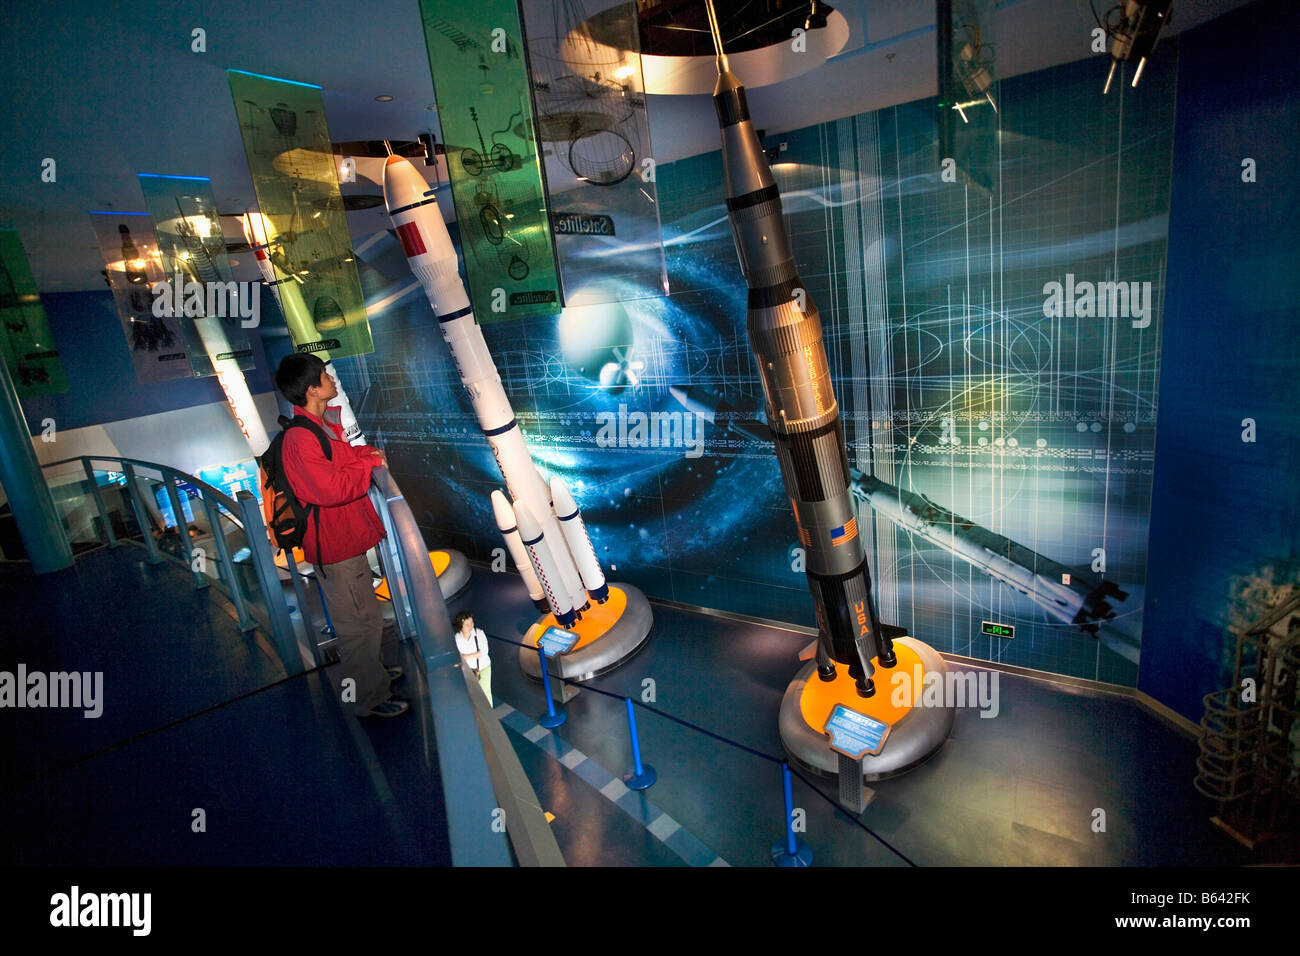 China, Shanghai, Shanghai Science and Technology Museum. Rockets of USA, Russia and China. - Stock Image